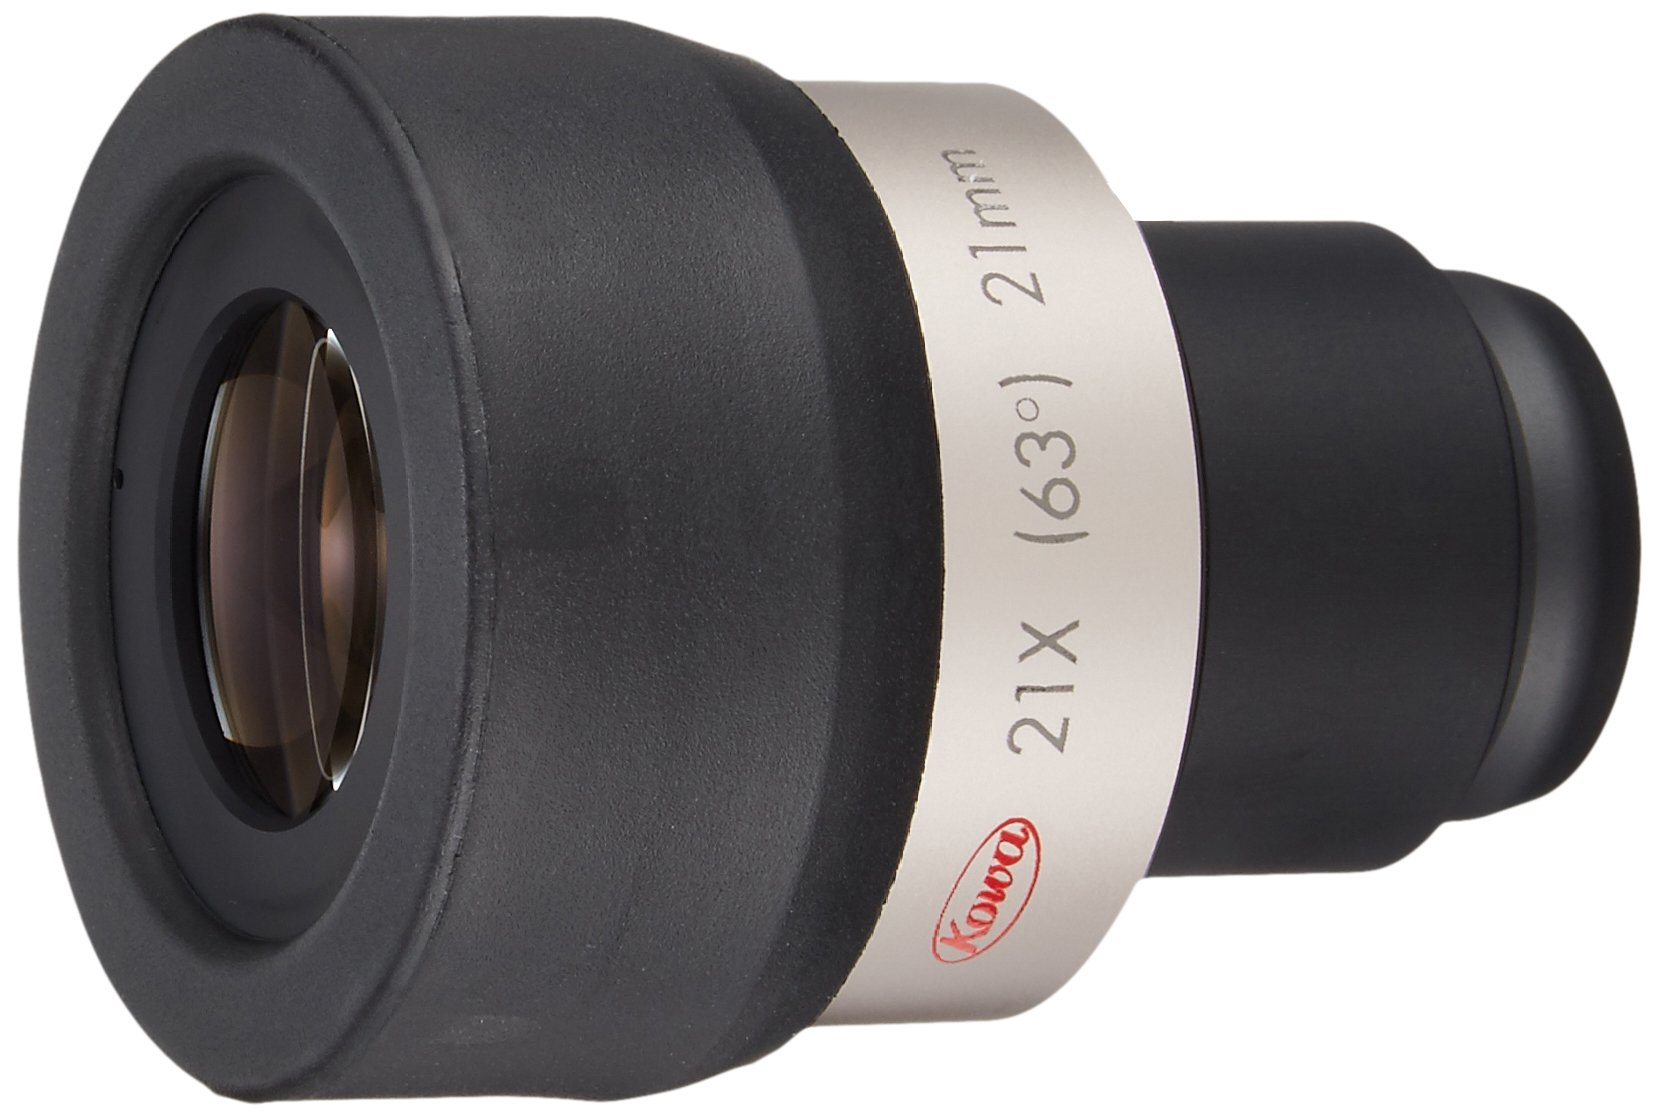 Kowa TE-21WH High Lander 21x Eyepiece (1 Unit)